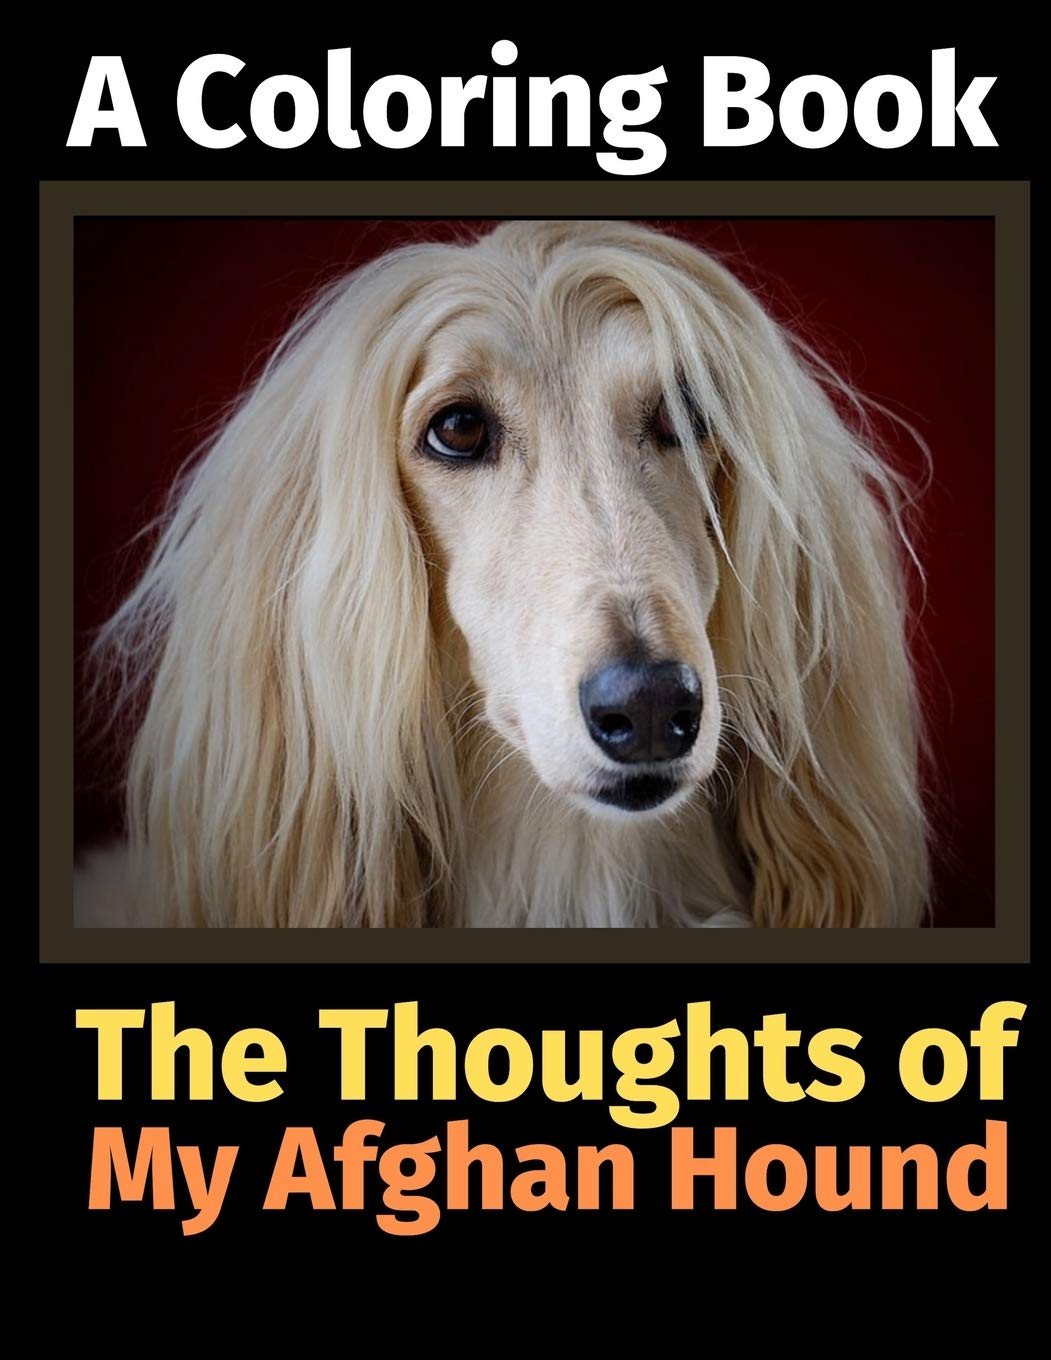 The Thoughts of My Afghan Hound: A Coloring Book